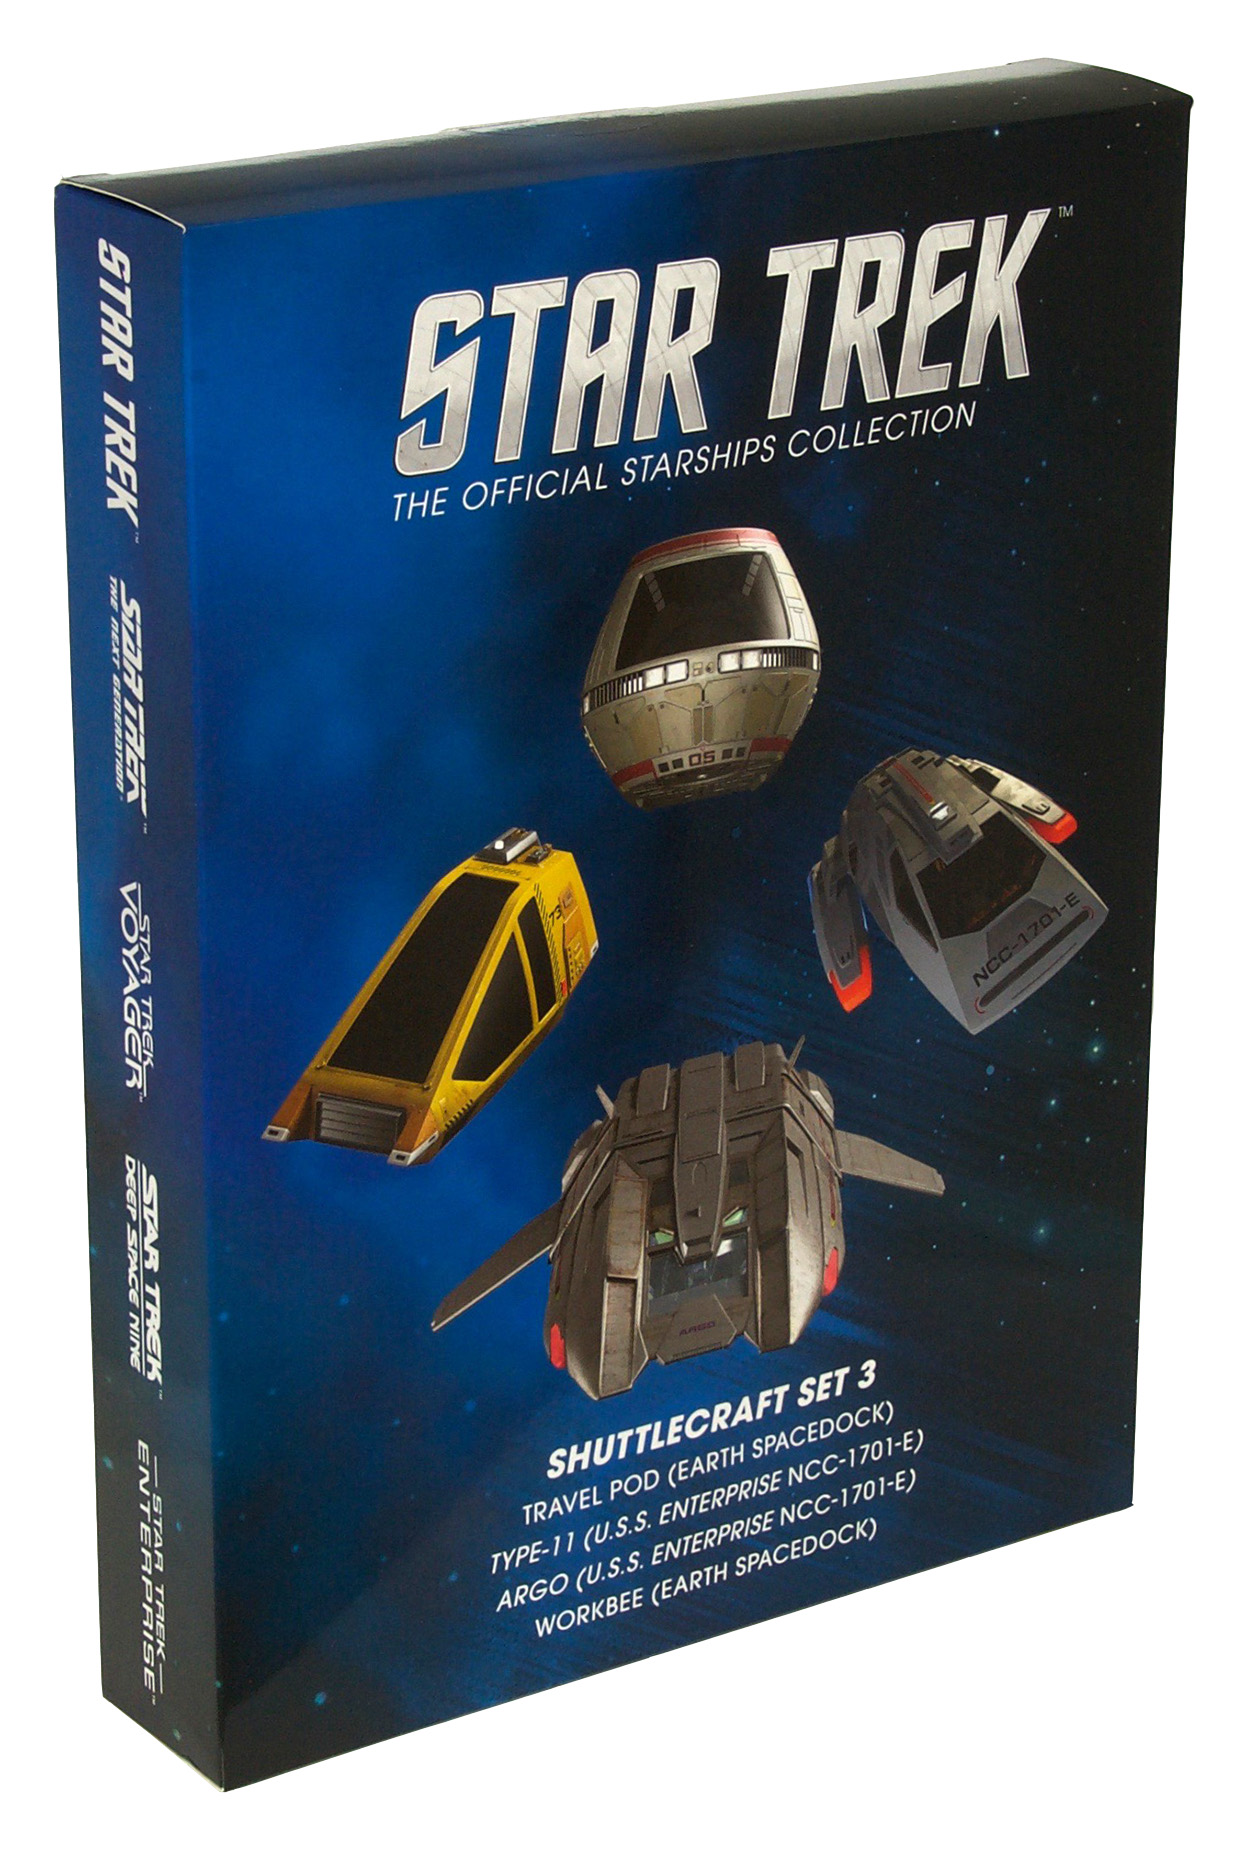 Eaglemoss Star Trek Starships Shuttle Set 3 Box